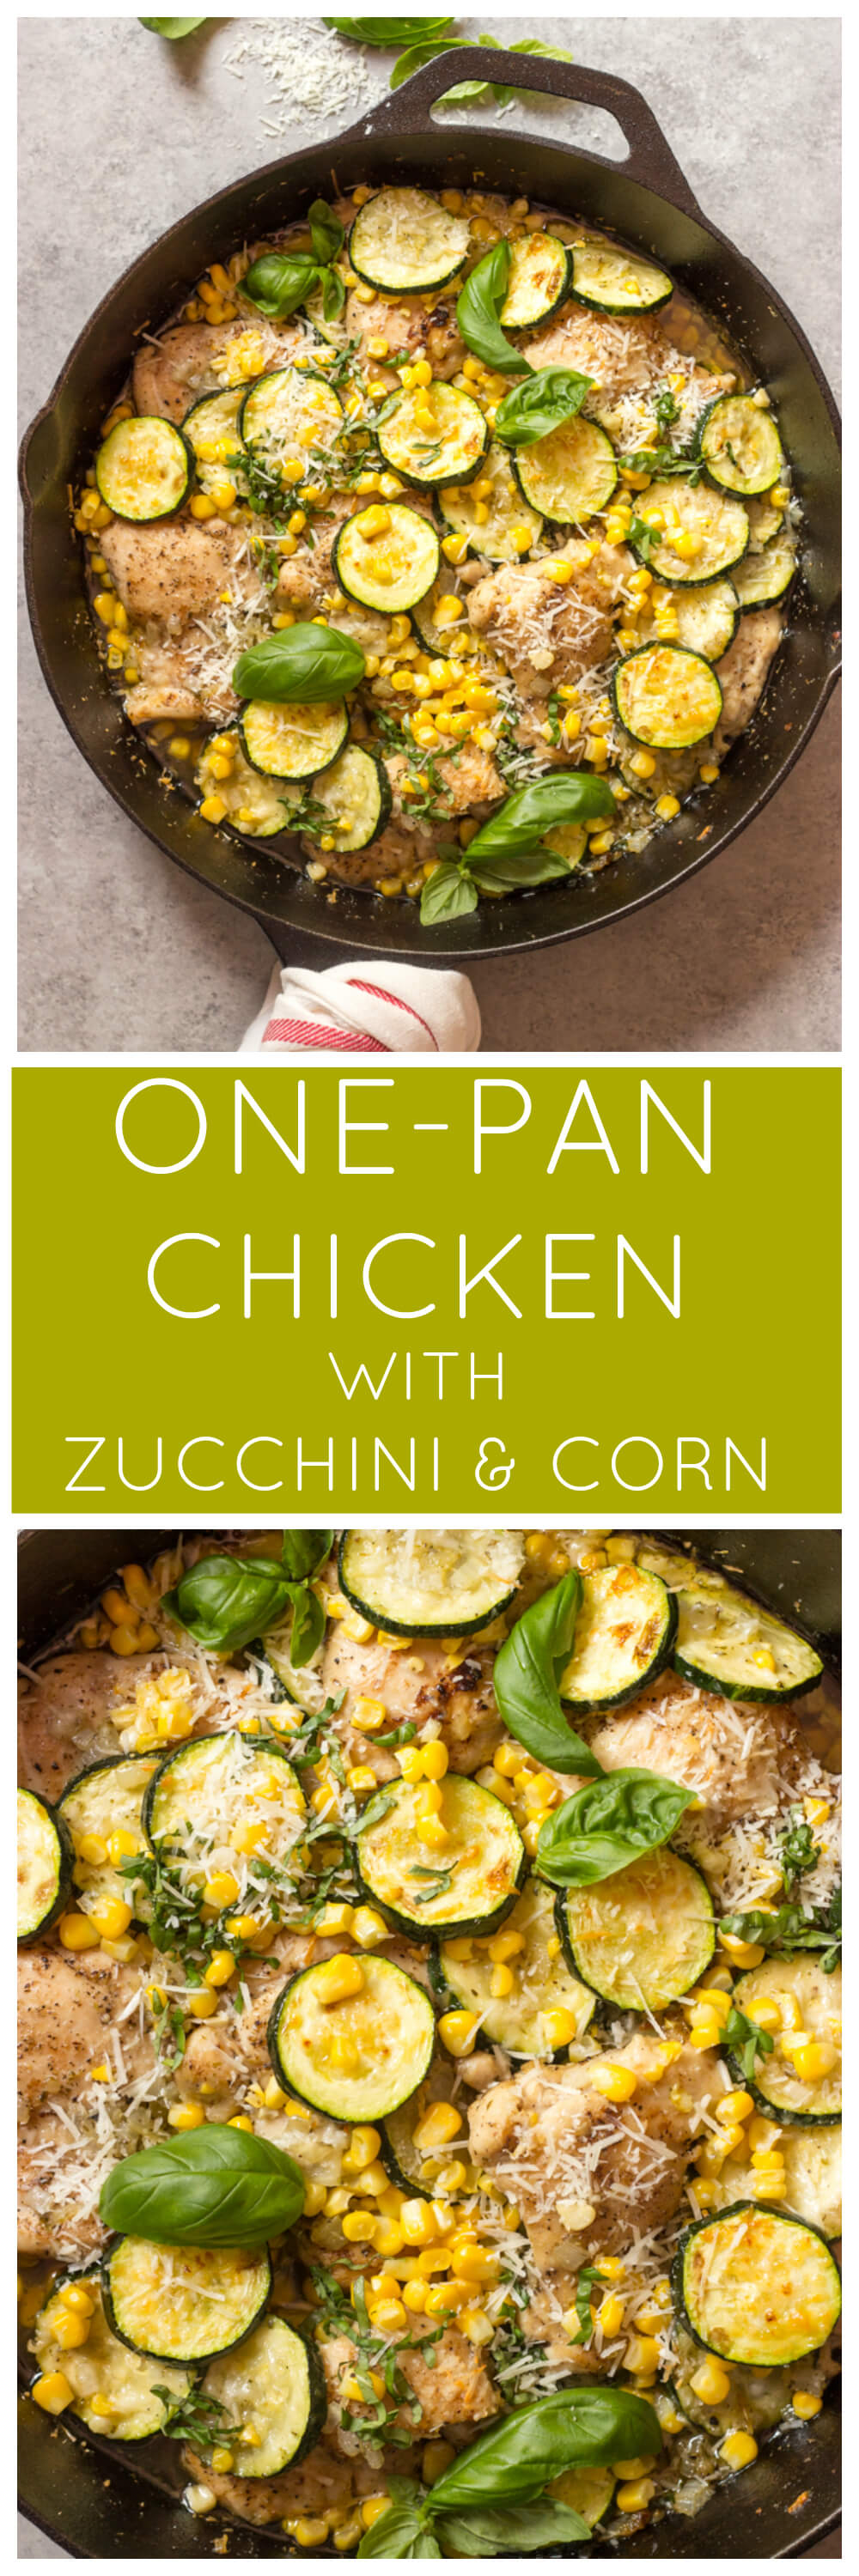 One-Pan Chicken with Zucchini and Corn - roasted chicken with zucchini and corn made with just a handful of ingredients. Perfect for summer nights | littlebroken.com @littlebroken